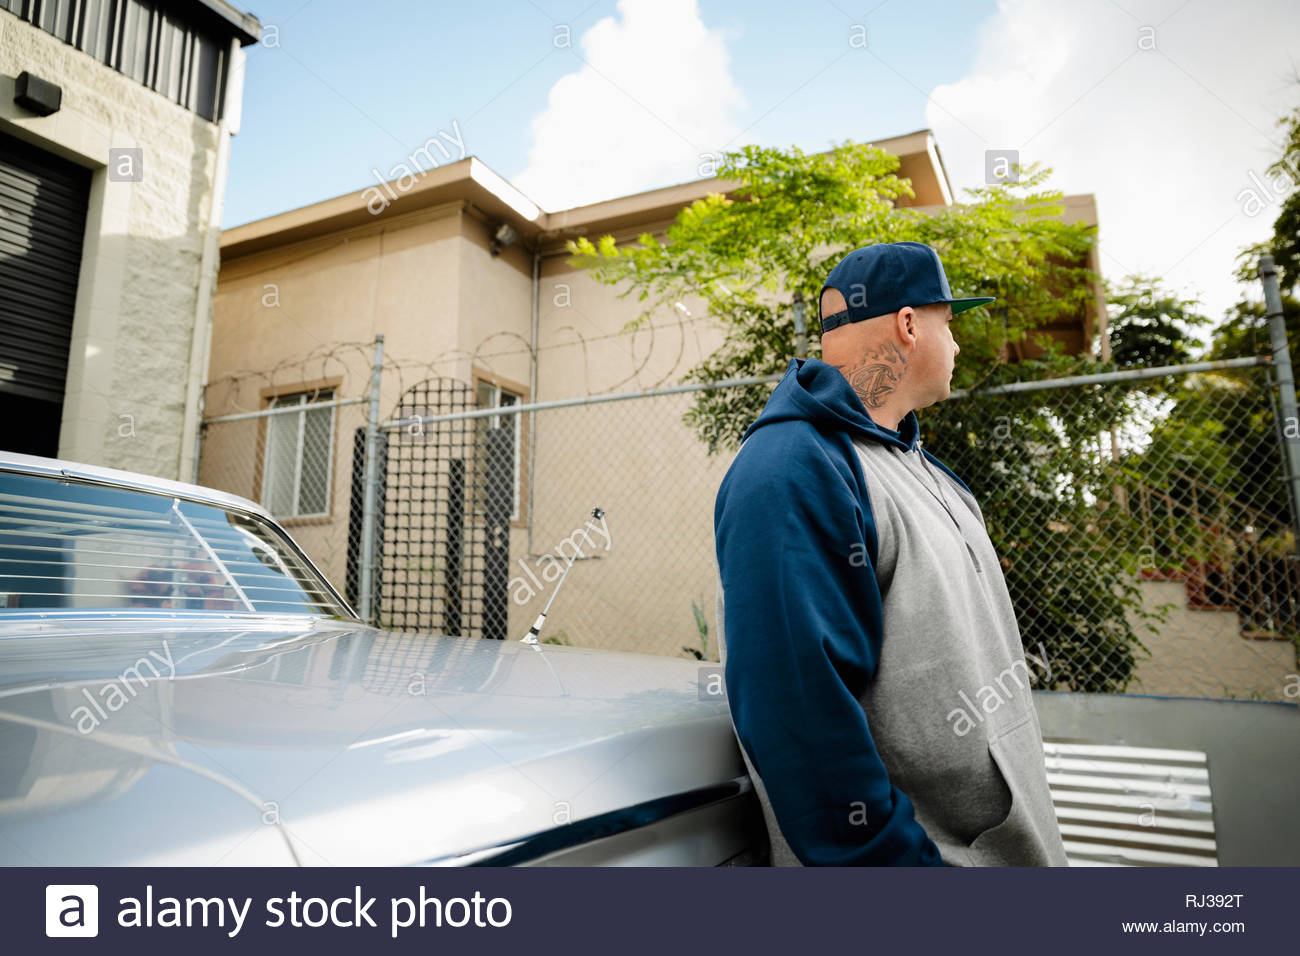 Latinx man leaning against vintage car - Stock Image